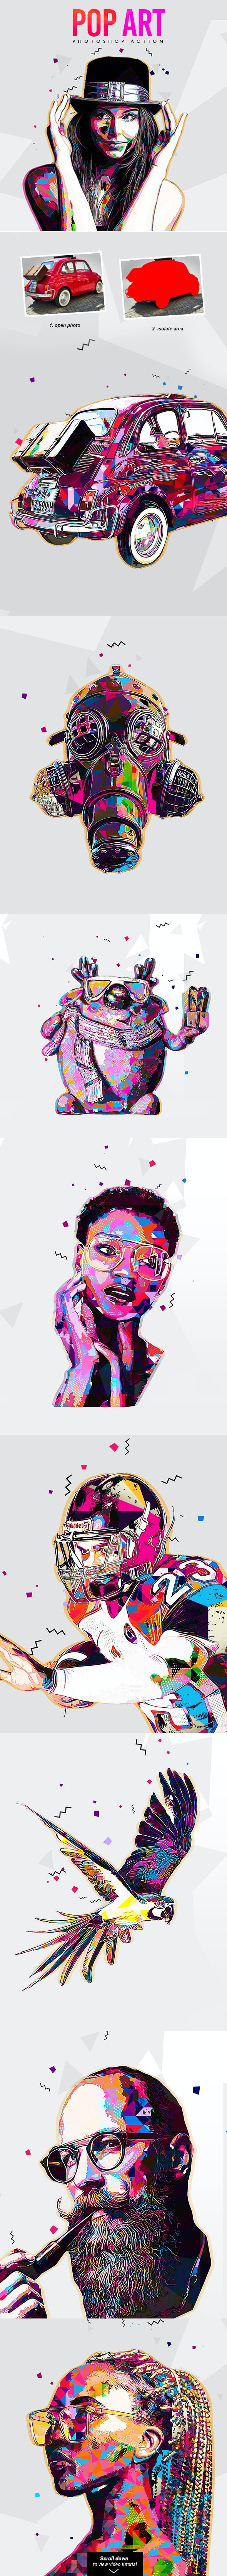 Pop Art - Photoshop Action - Photo Effects Actions